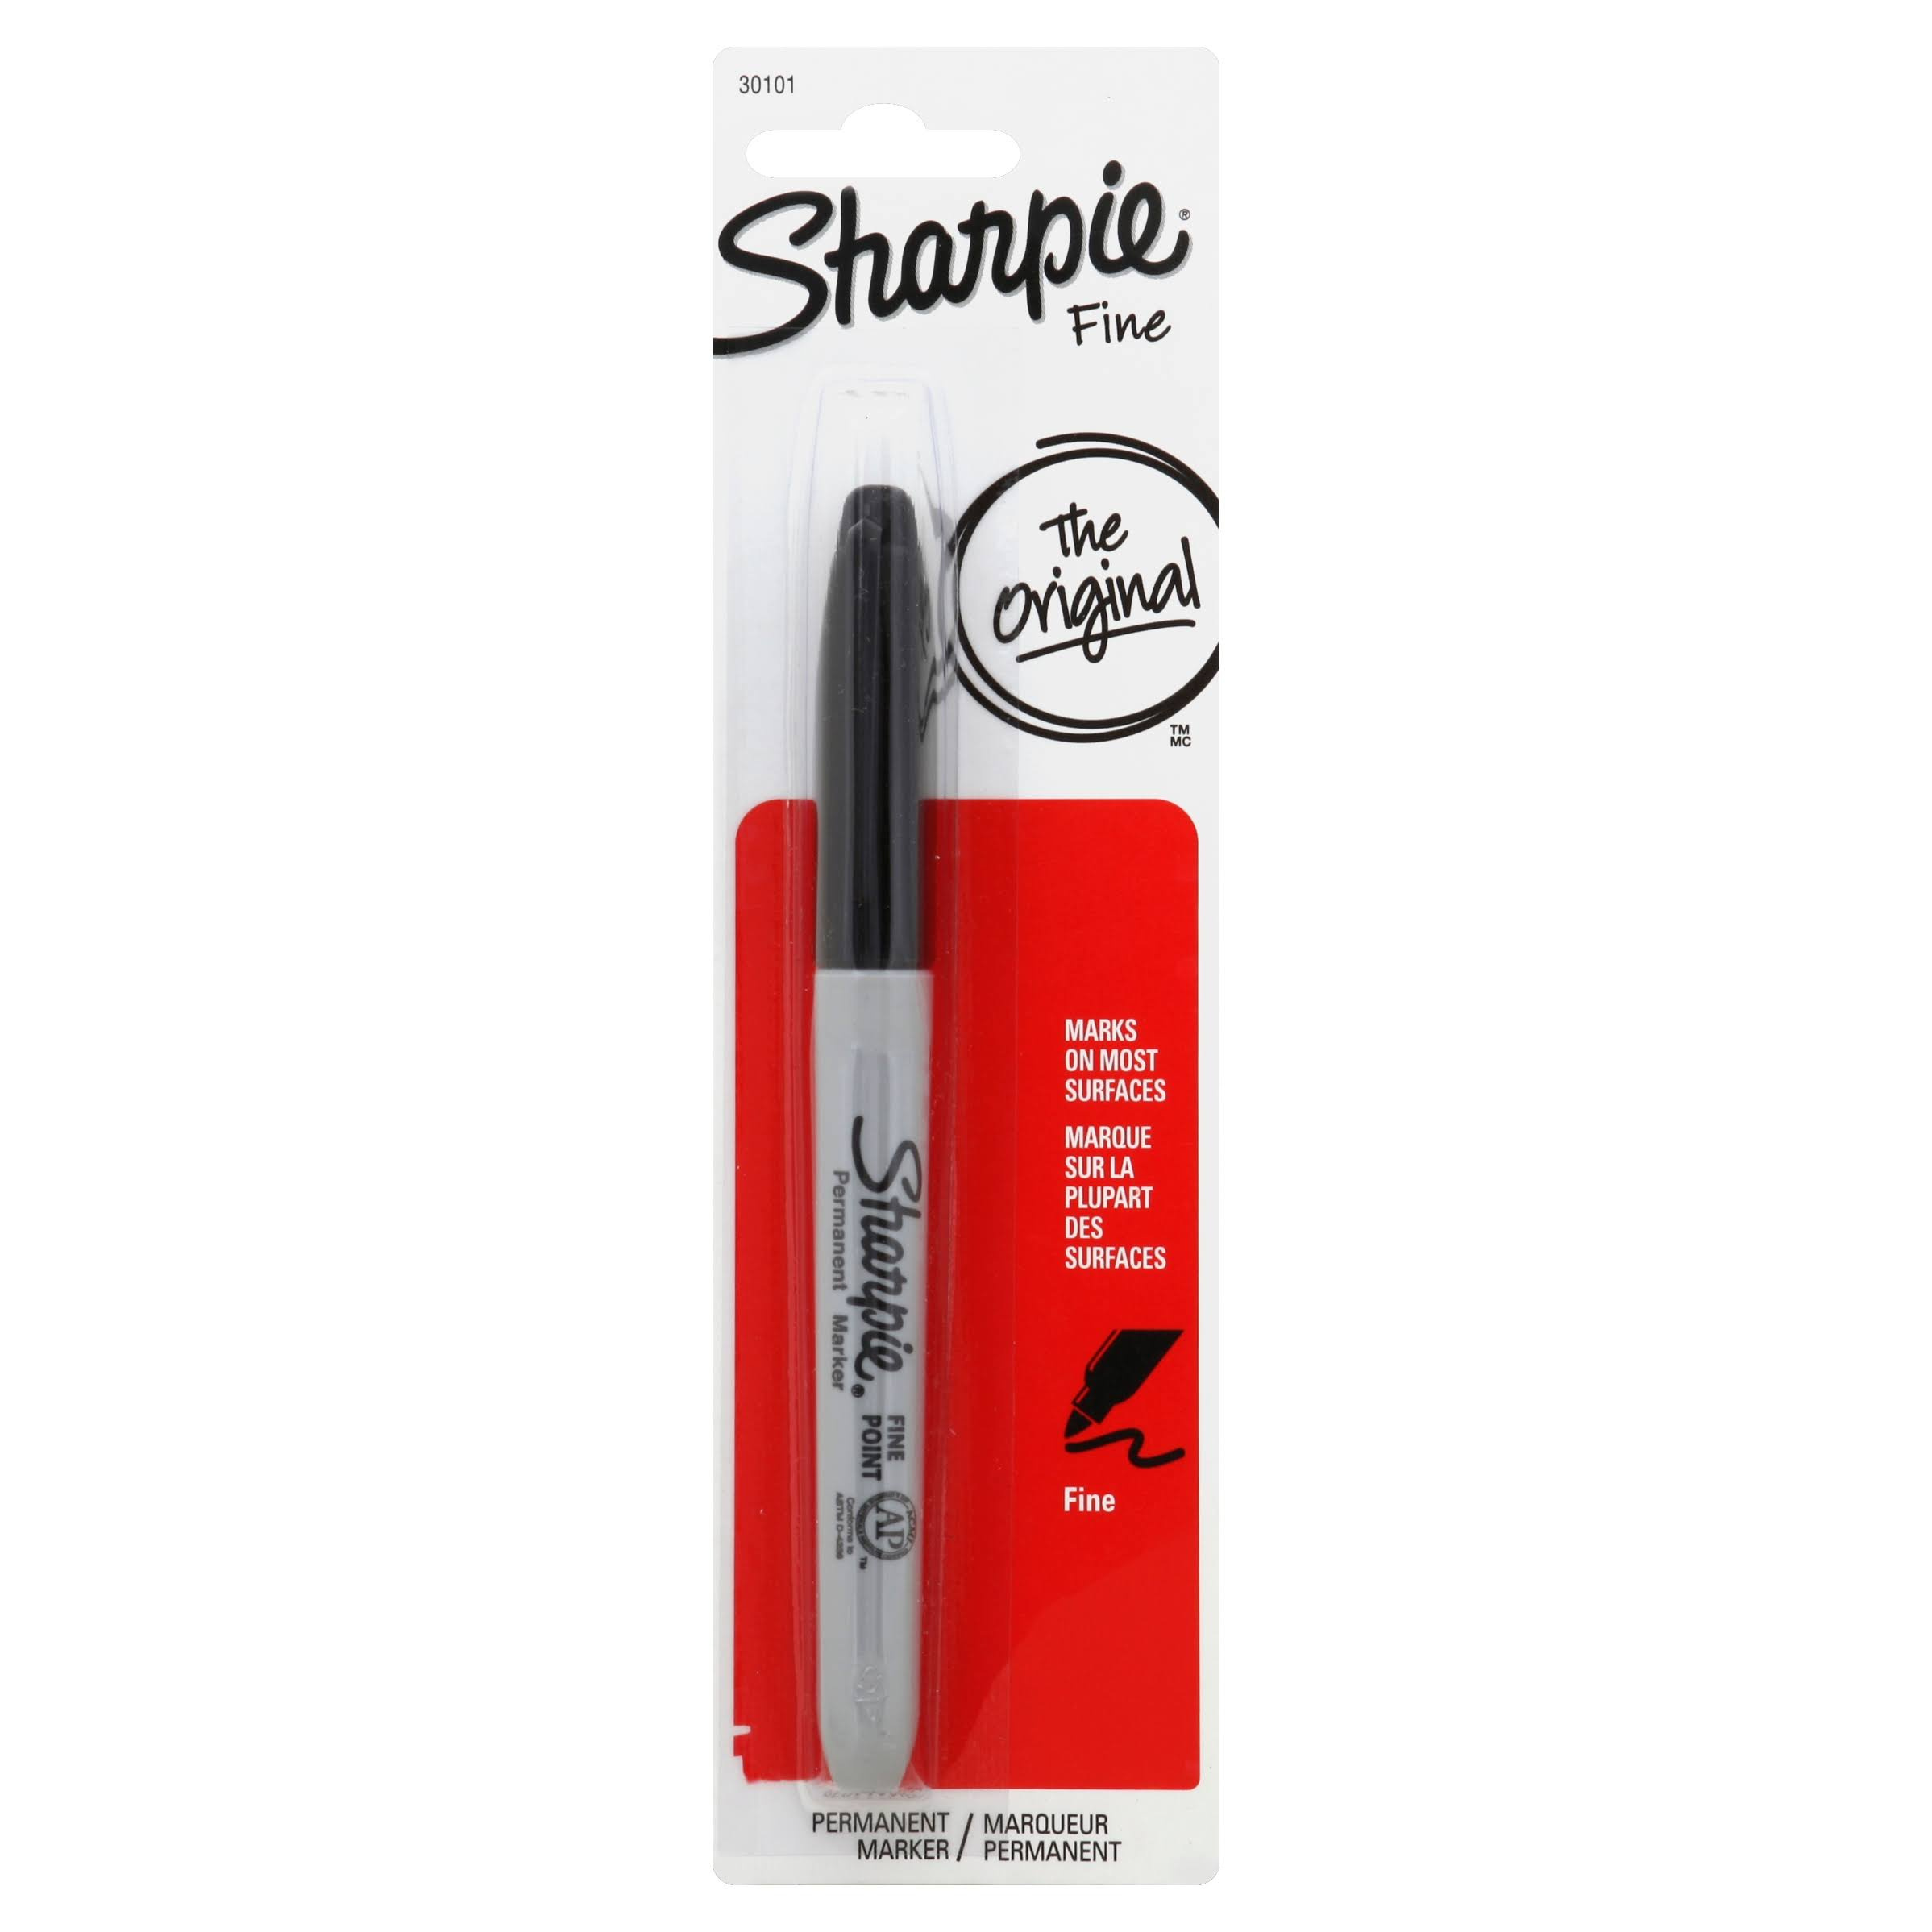 Sharpie Permanent Marker - Fine Tip, Black